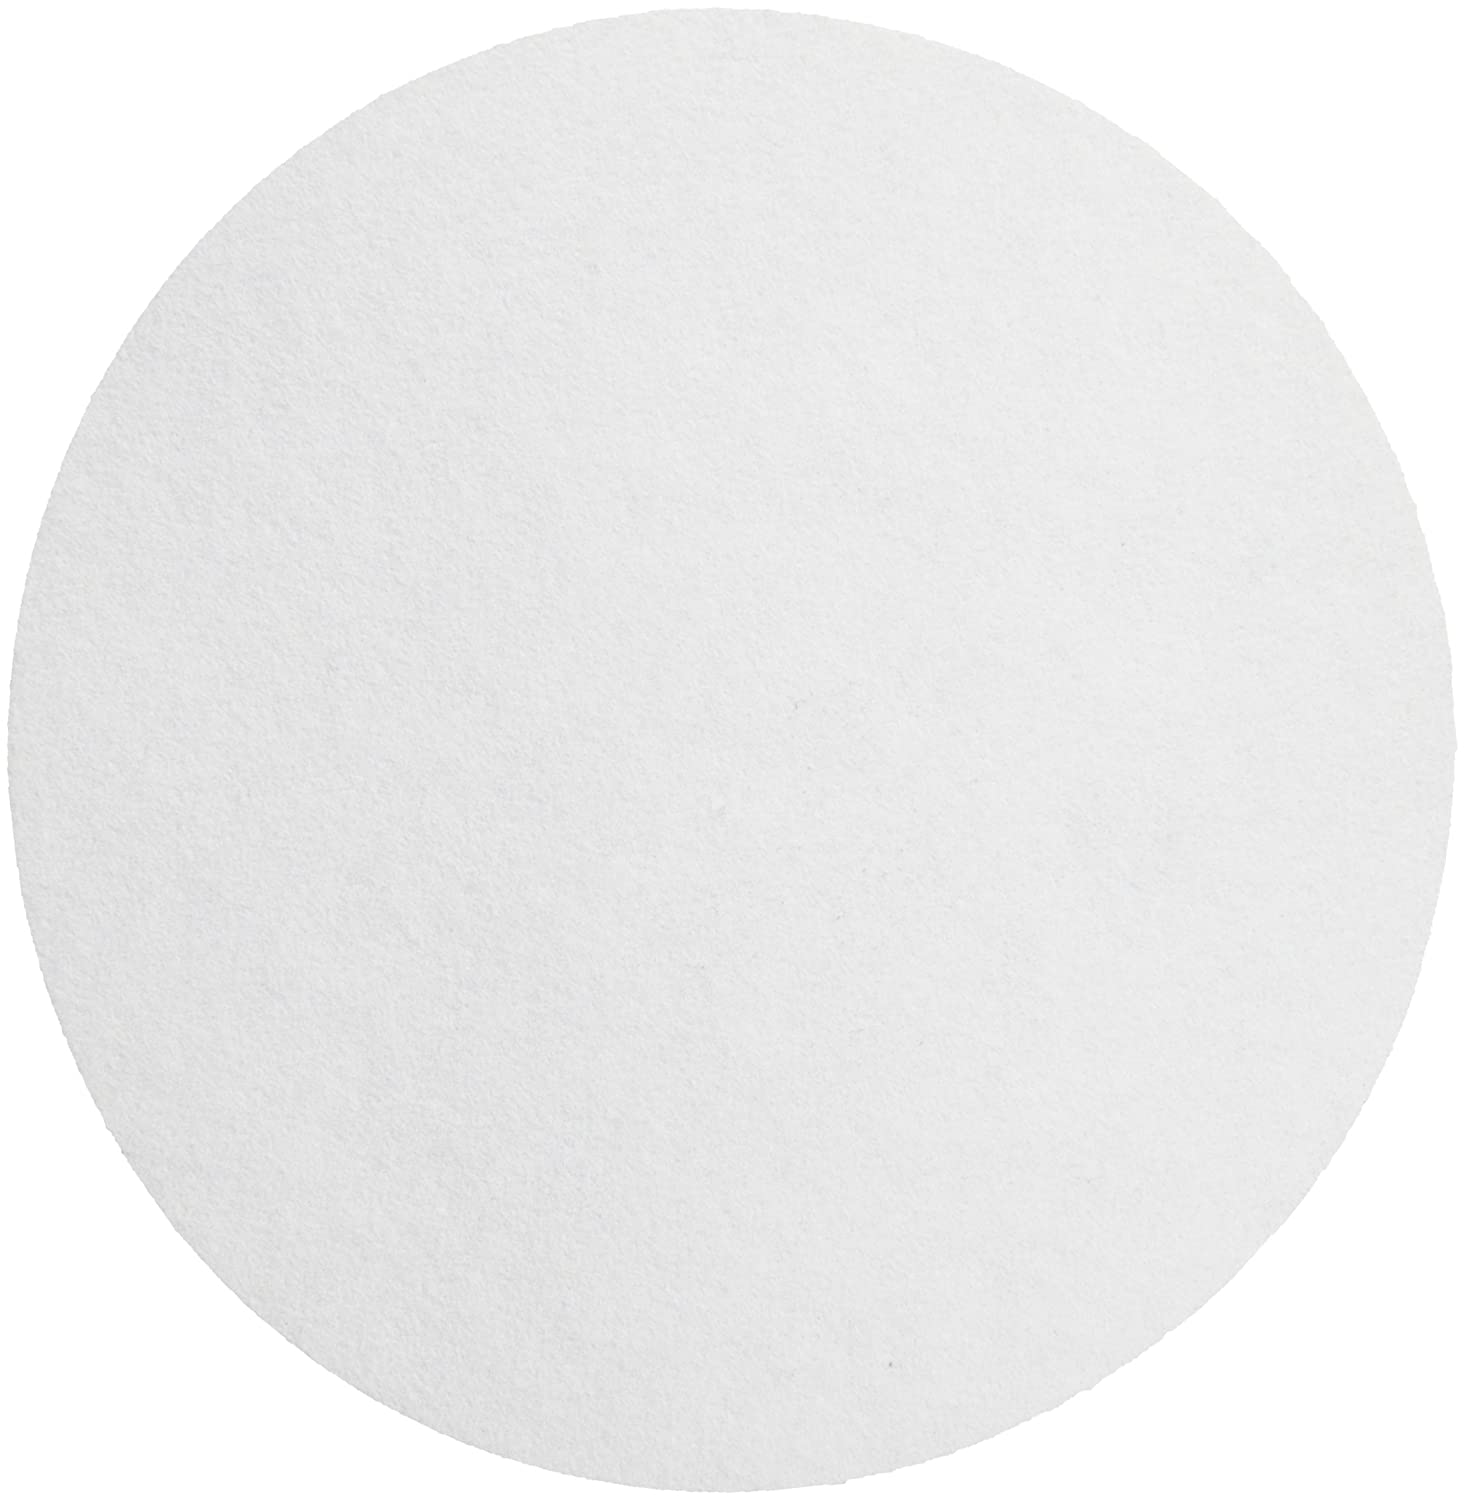 8 Micron Grade 40 Whatman 1440-055 Ashless Quantitative Filter Paper Pack of 100 5.5cm Diameter